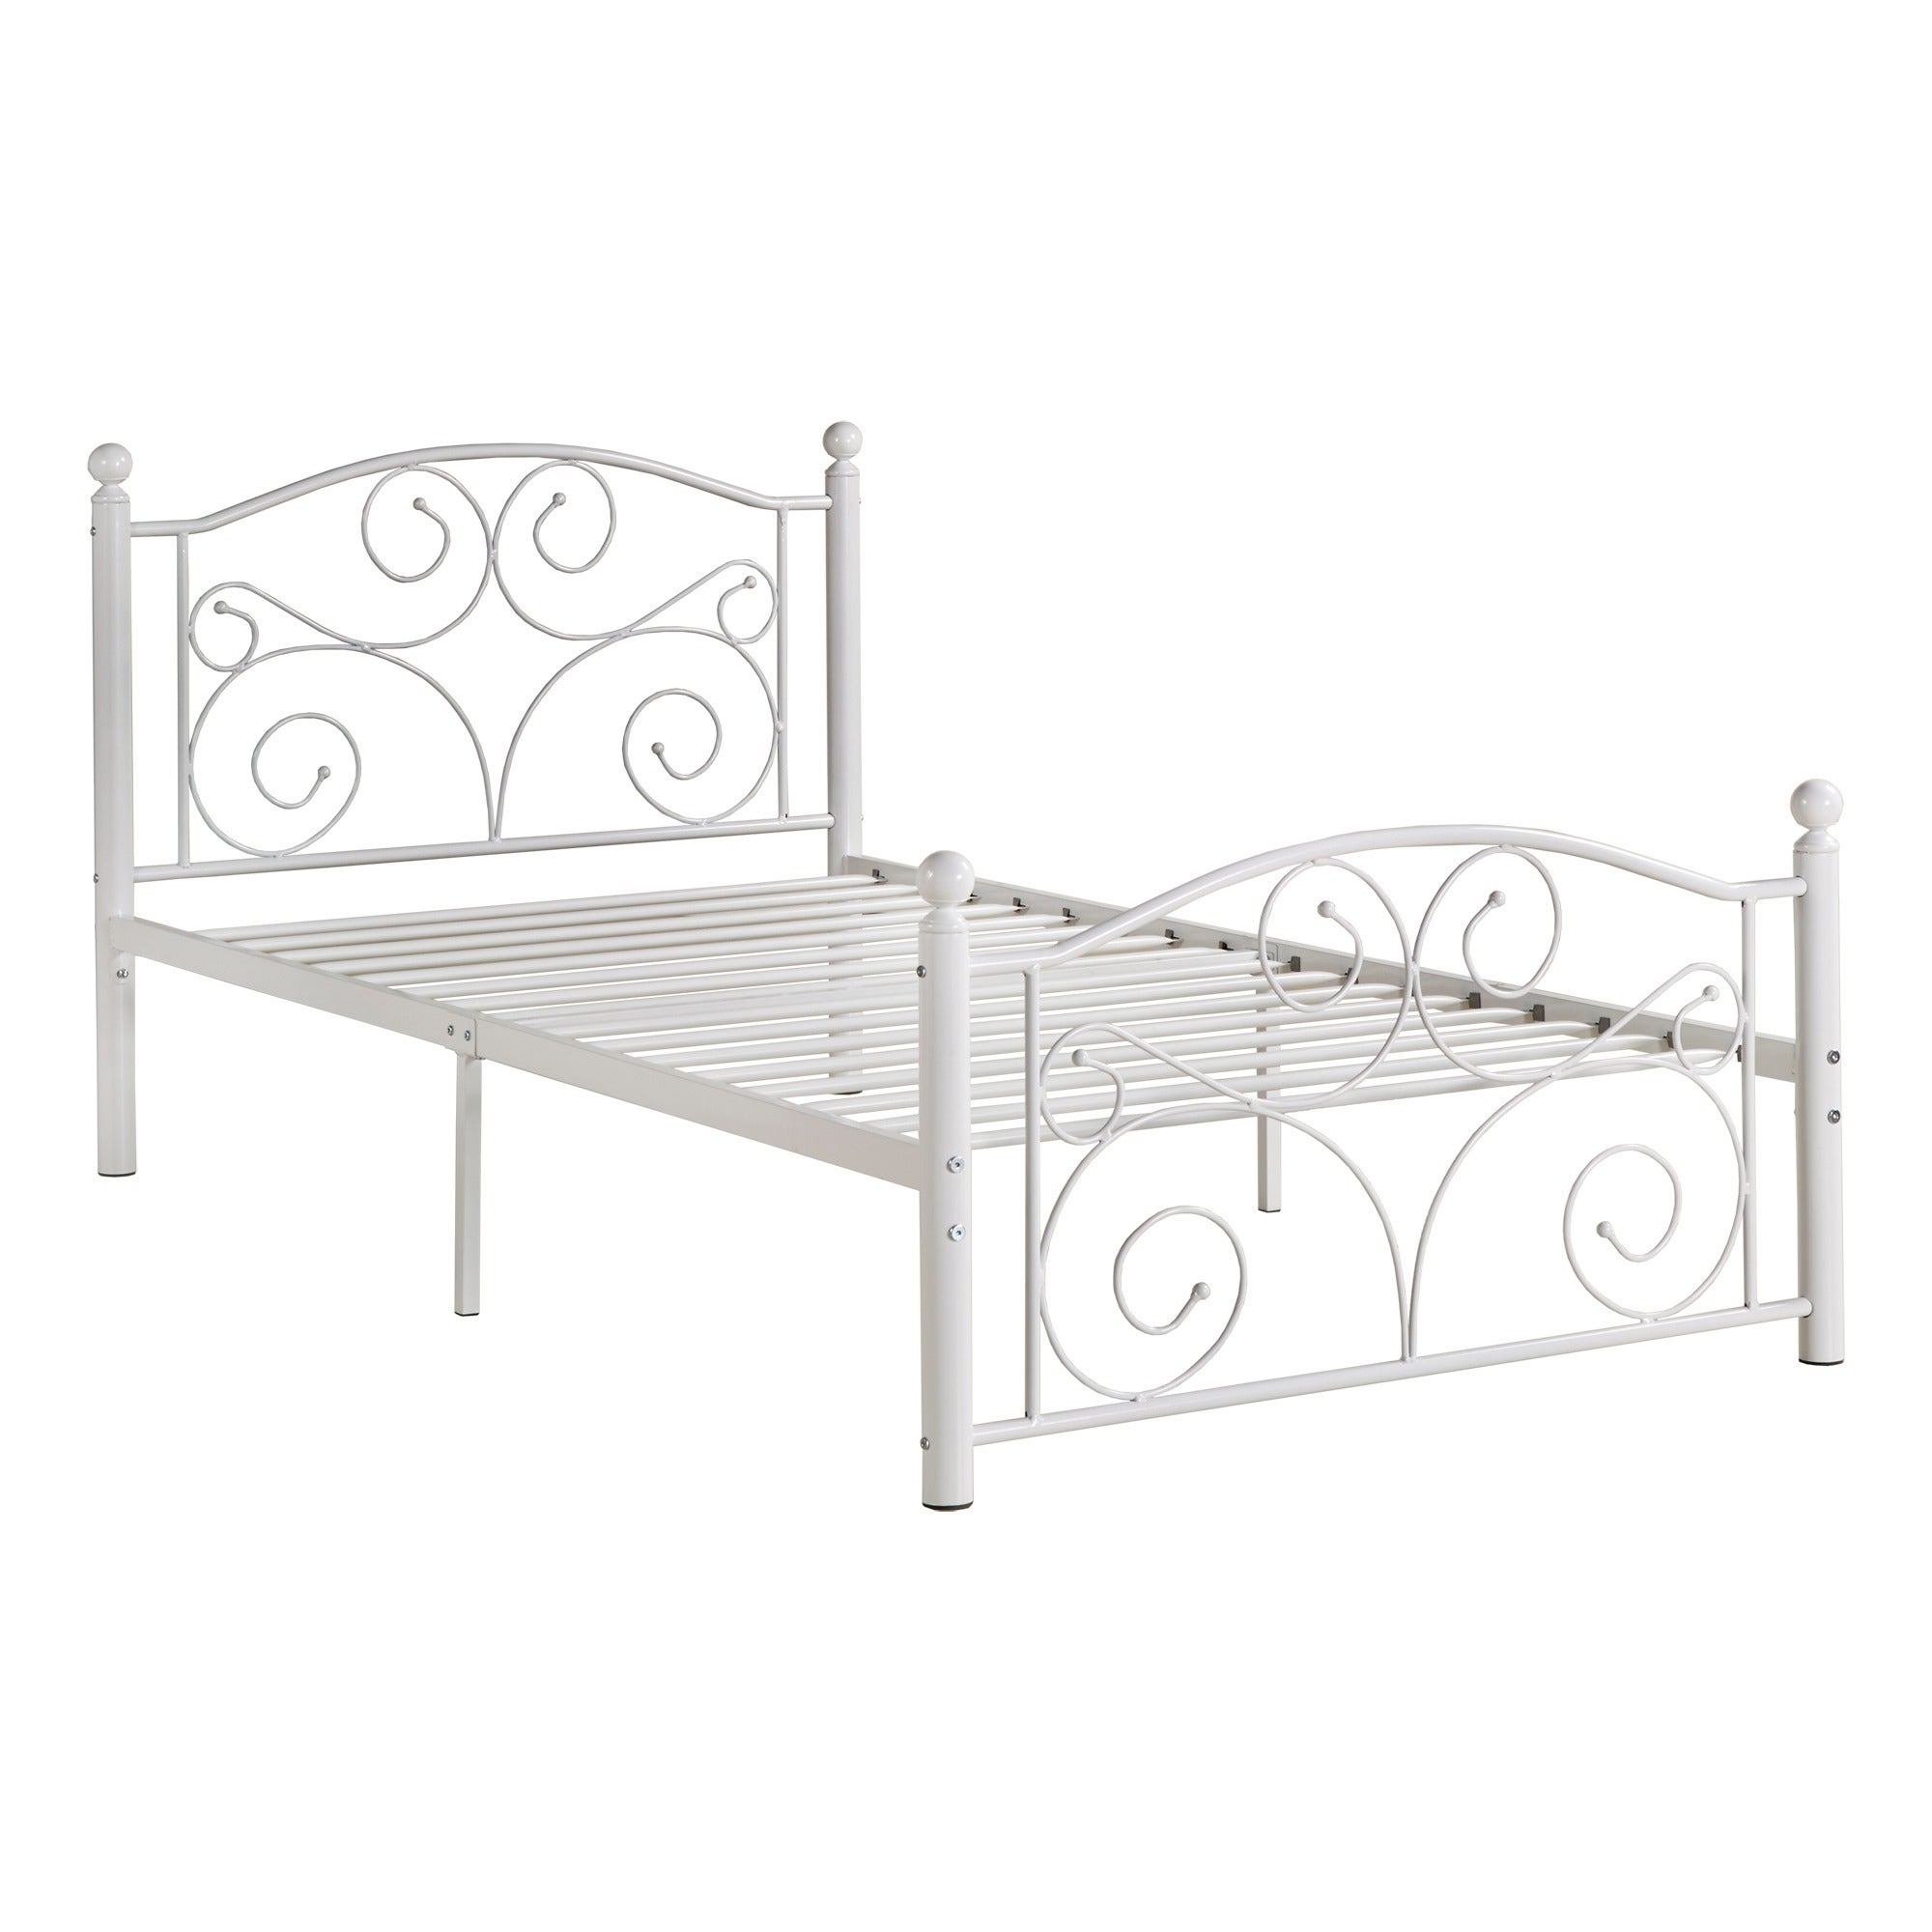 zinus slickdeals f platform king metal bed deal inch image twin net